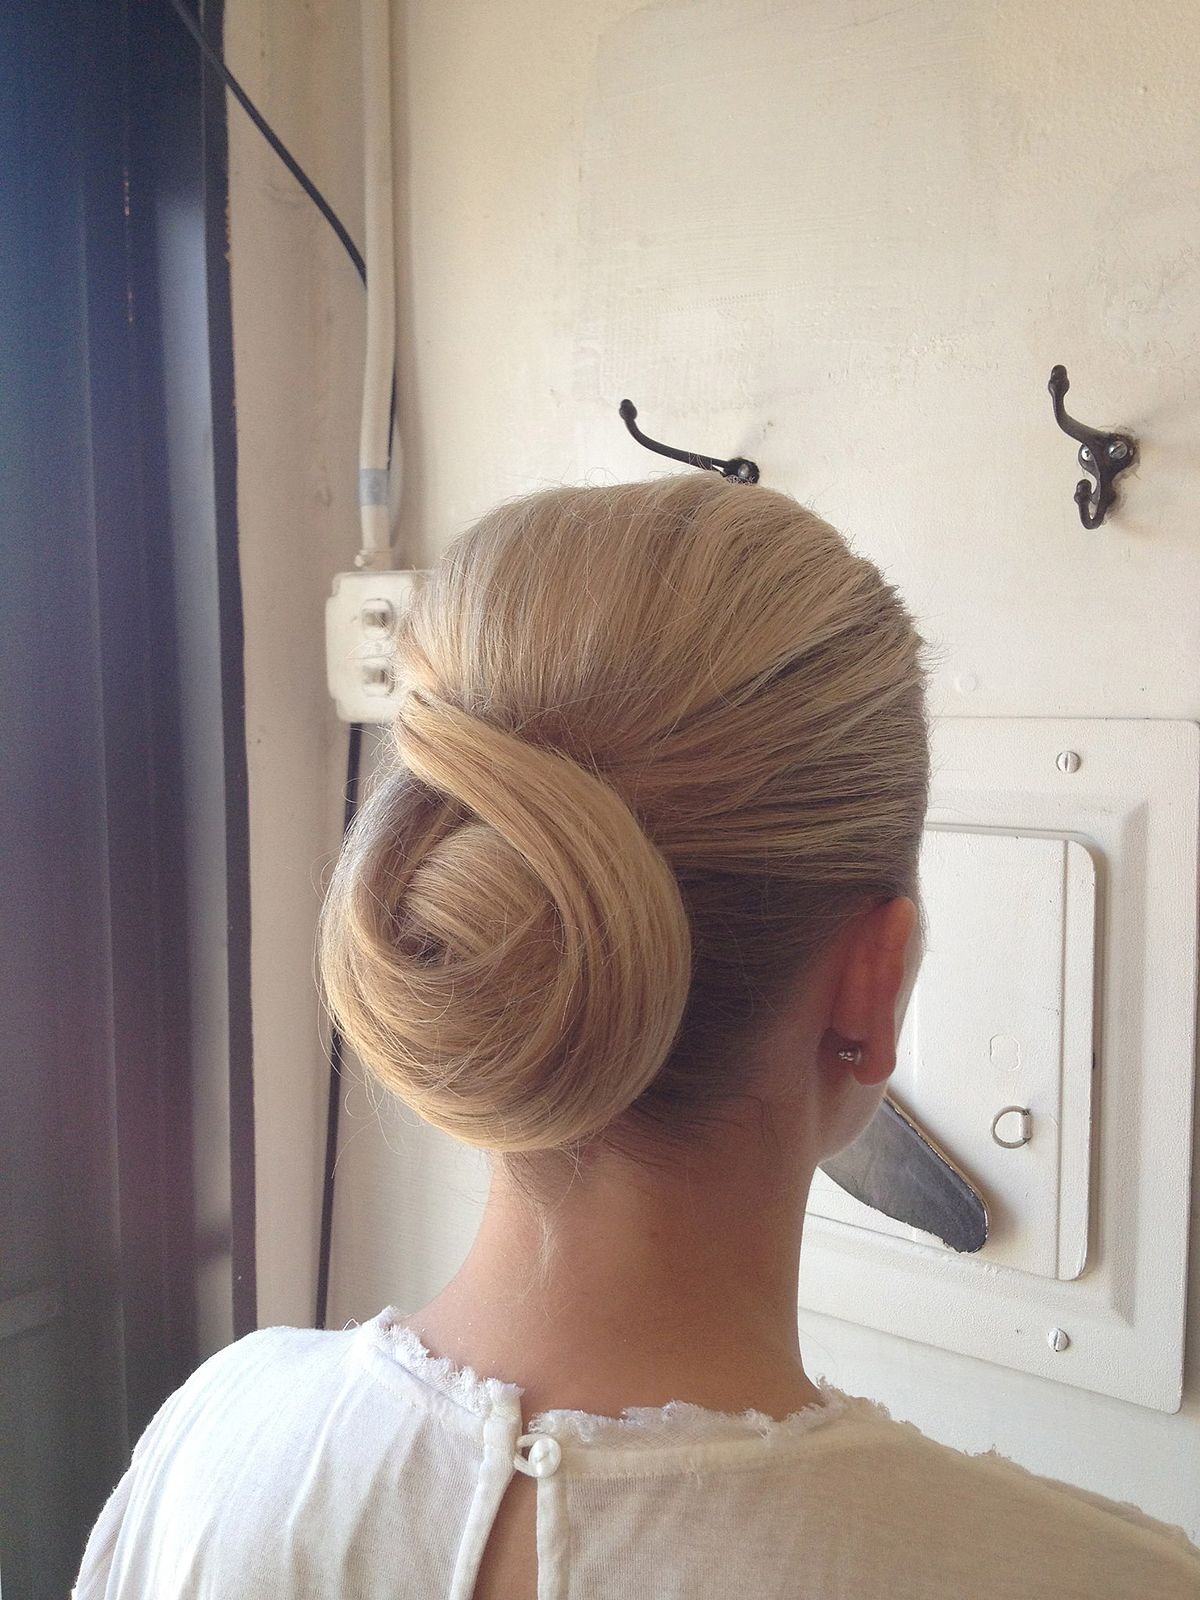 Chignon (hairstyle) - Wikipedia